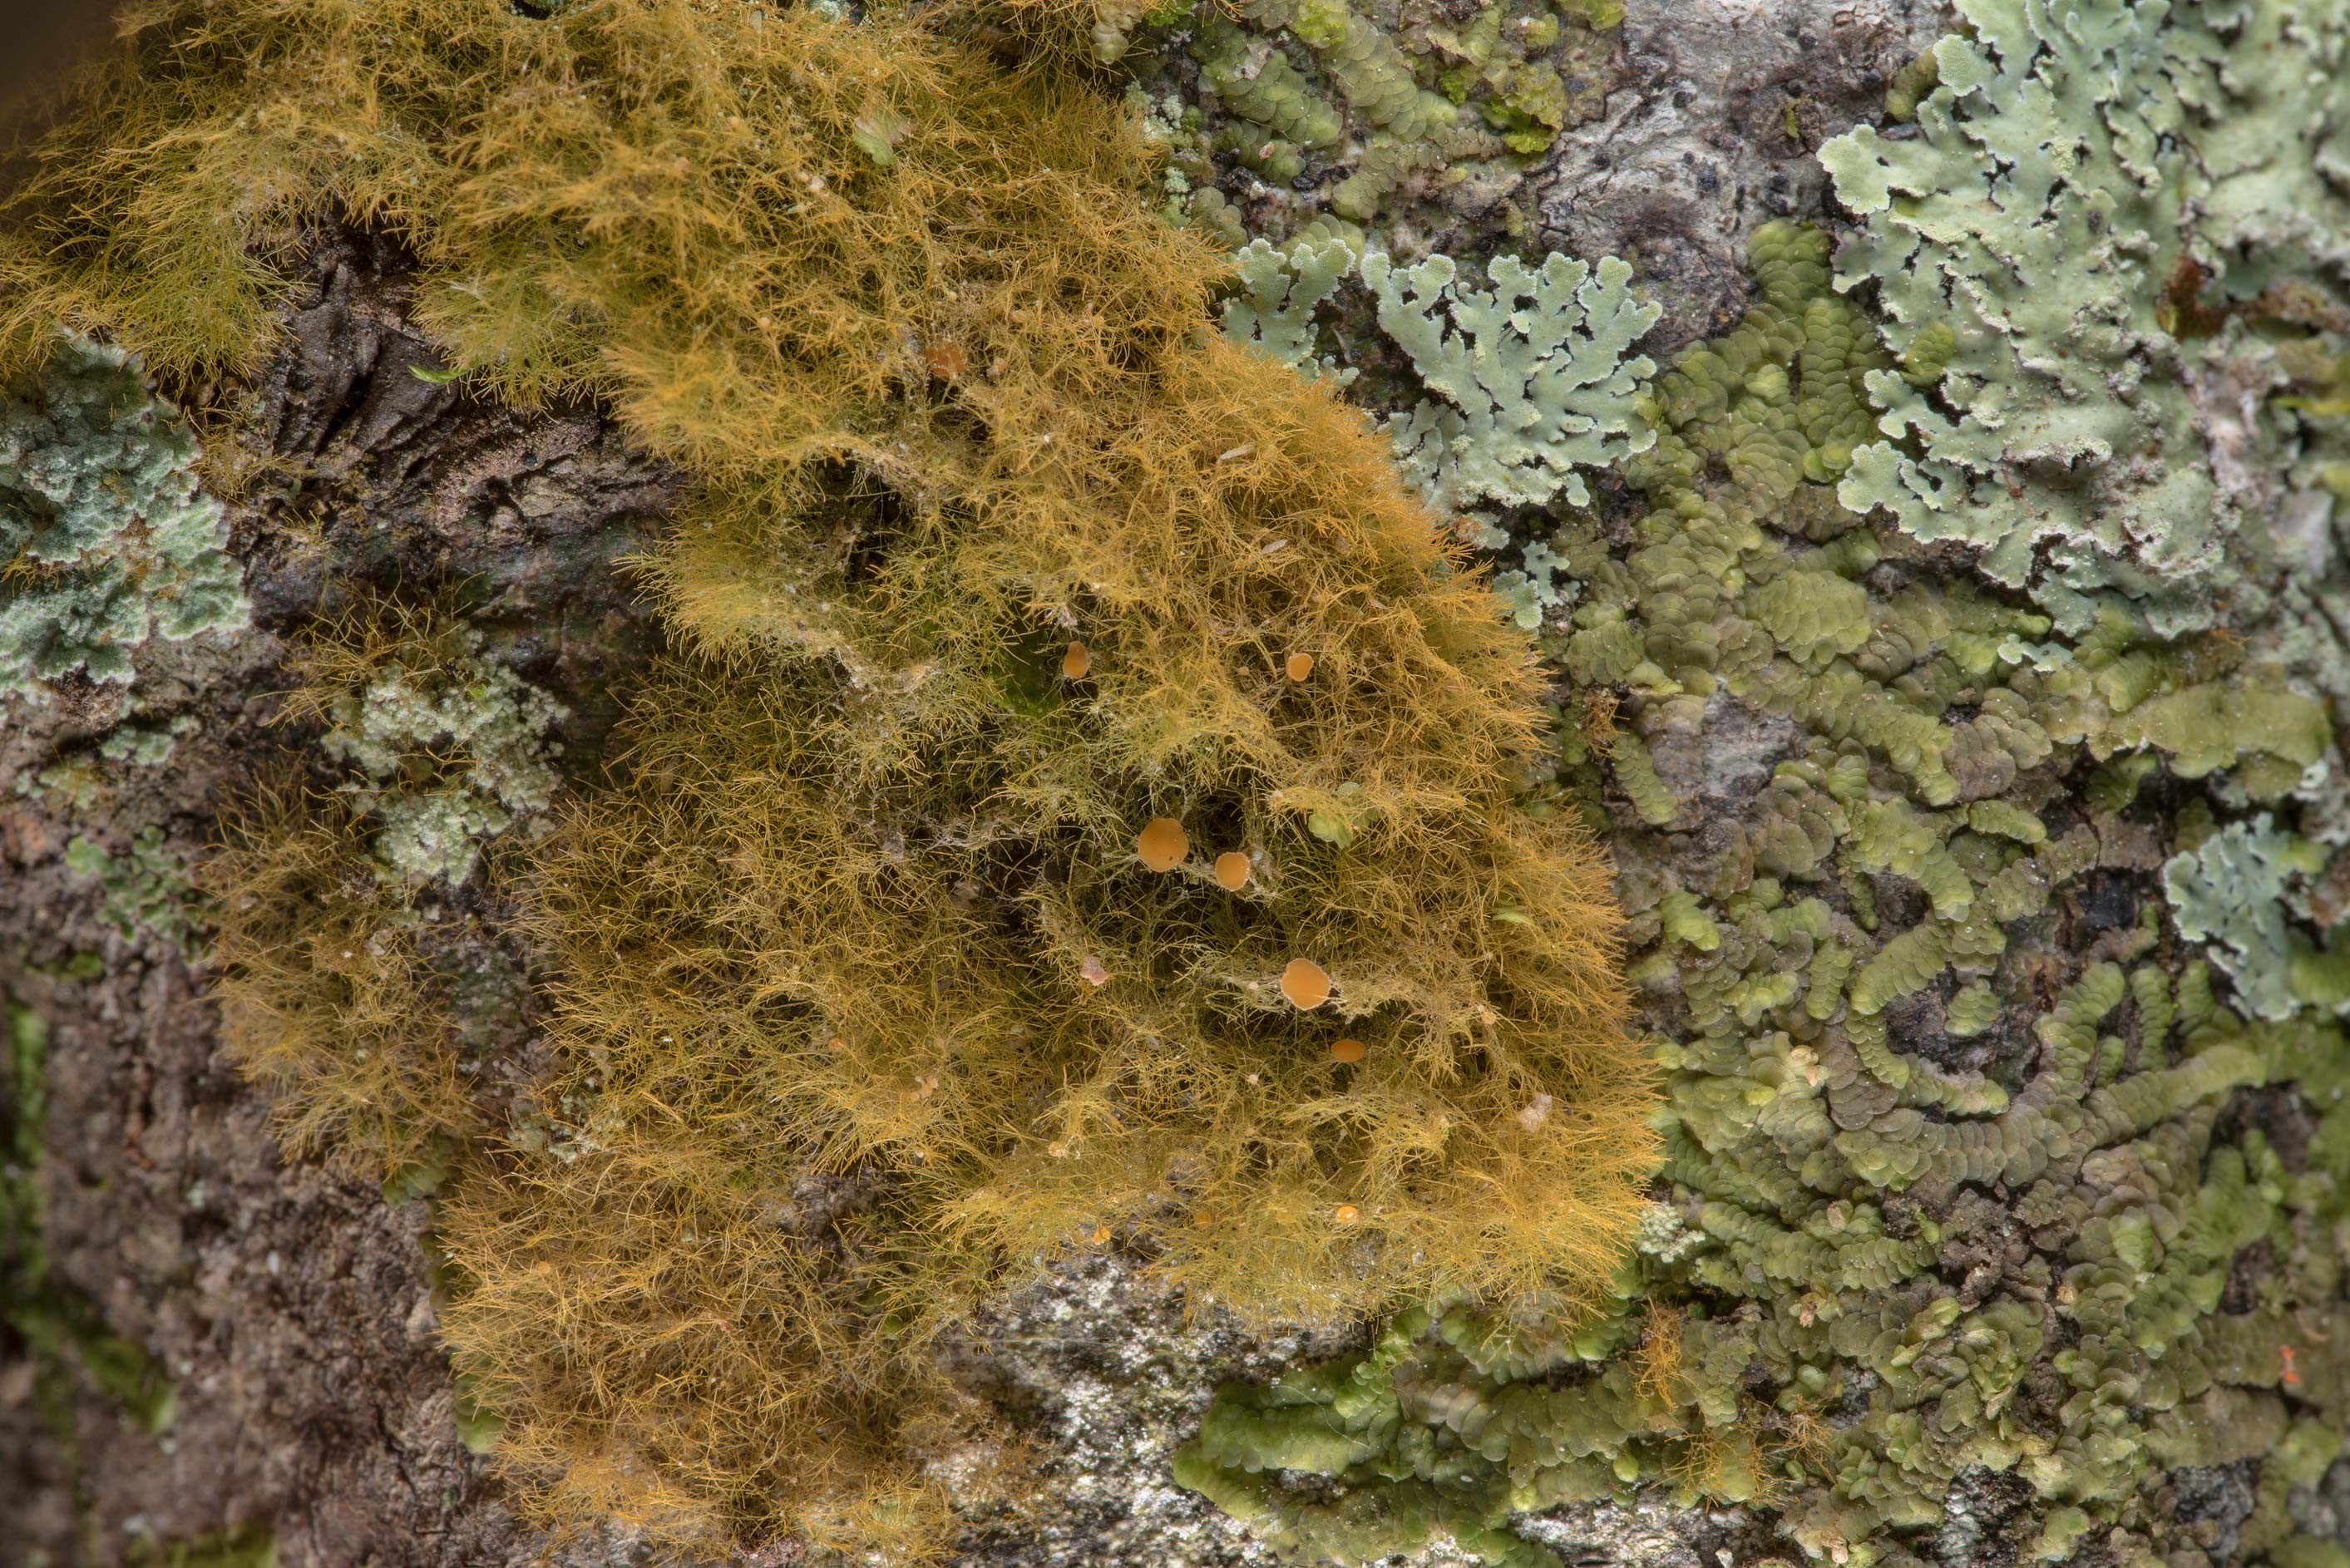 Pixie-hair lichen (Coenogonium implexum) with...National Forest. Shepherd, Texas